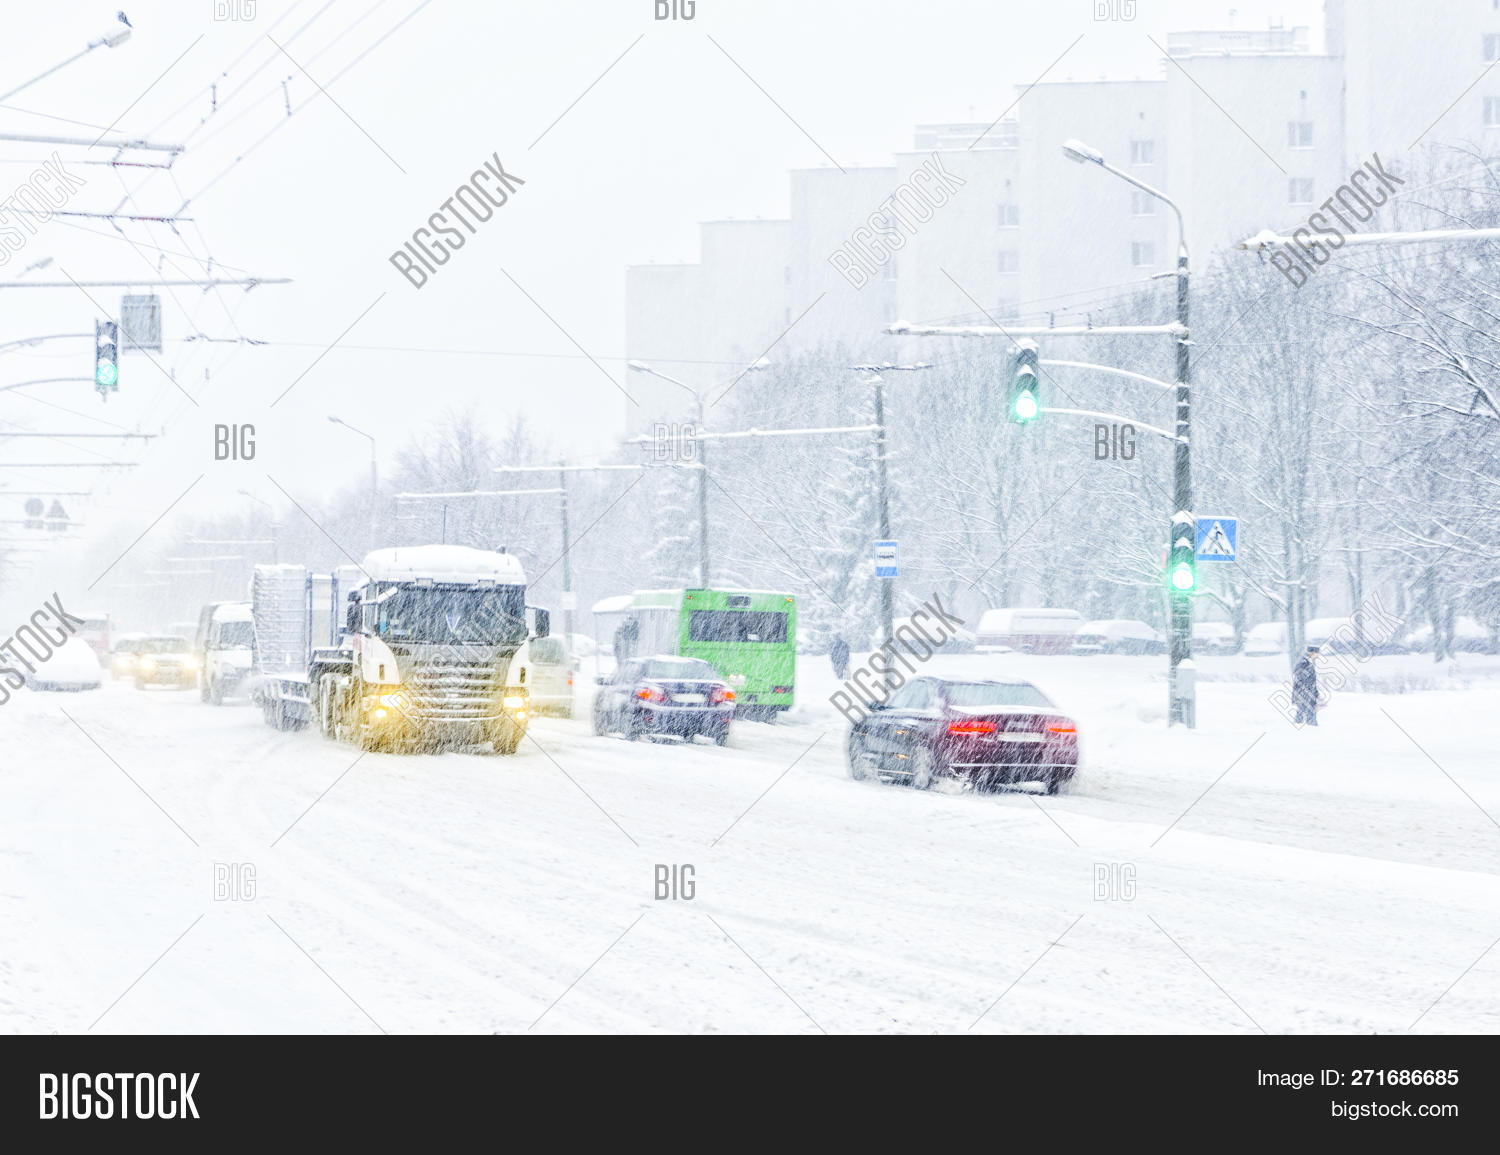 abstract,action,auto,background,between,blizzard,blurred,car,city,climate,conditions,covered,cross,crosswalk,dangerous,day,difficult,drift,drive,driver,flakes,frozen,hazard,jam,meteorology,move,pedestrian,people,relations,risk,road,safety,seasonal,silhouettes,snowfall,snowstorm,snowy,storm,street,traffic,transport,vehicle,visibility,weather,white,winter,yield